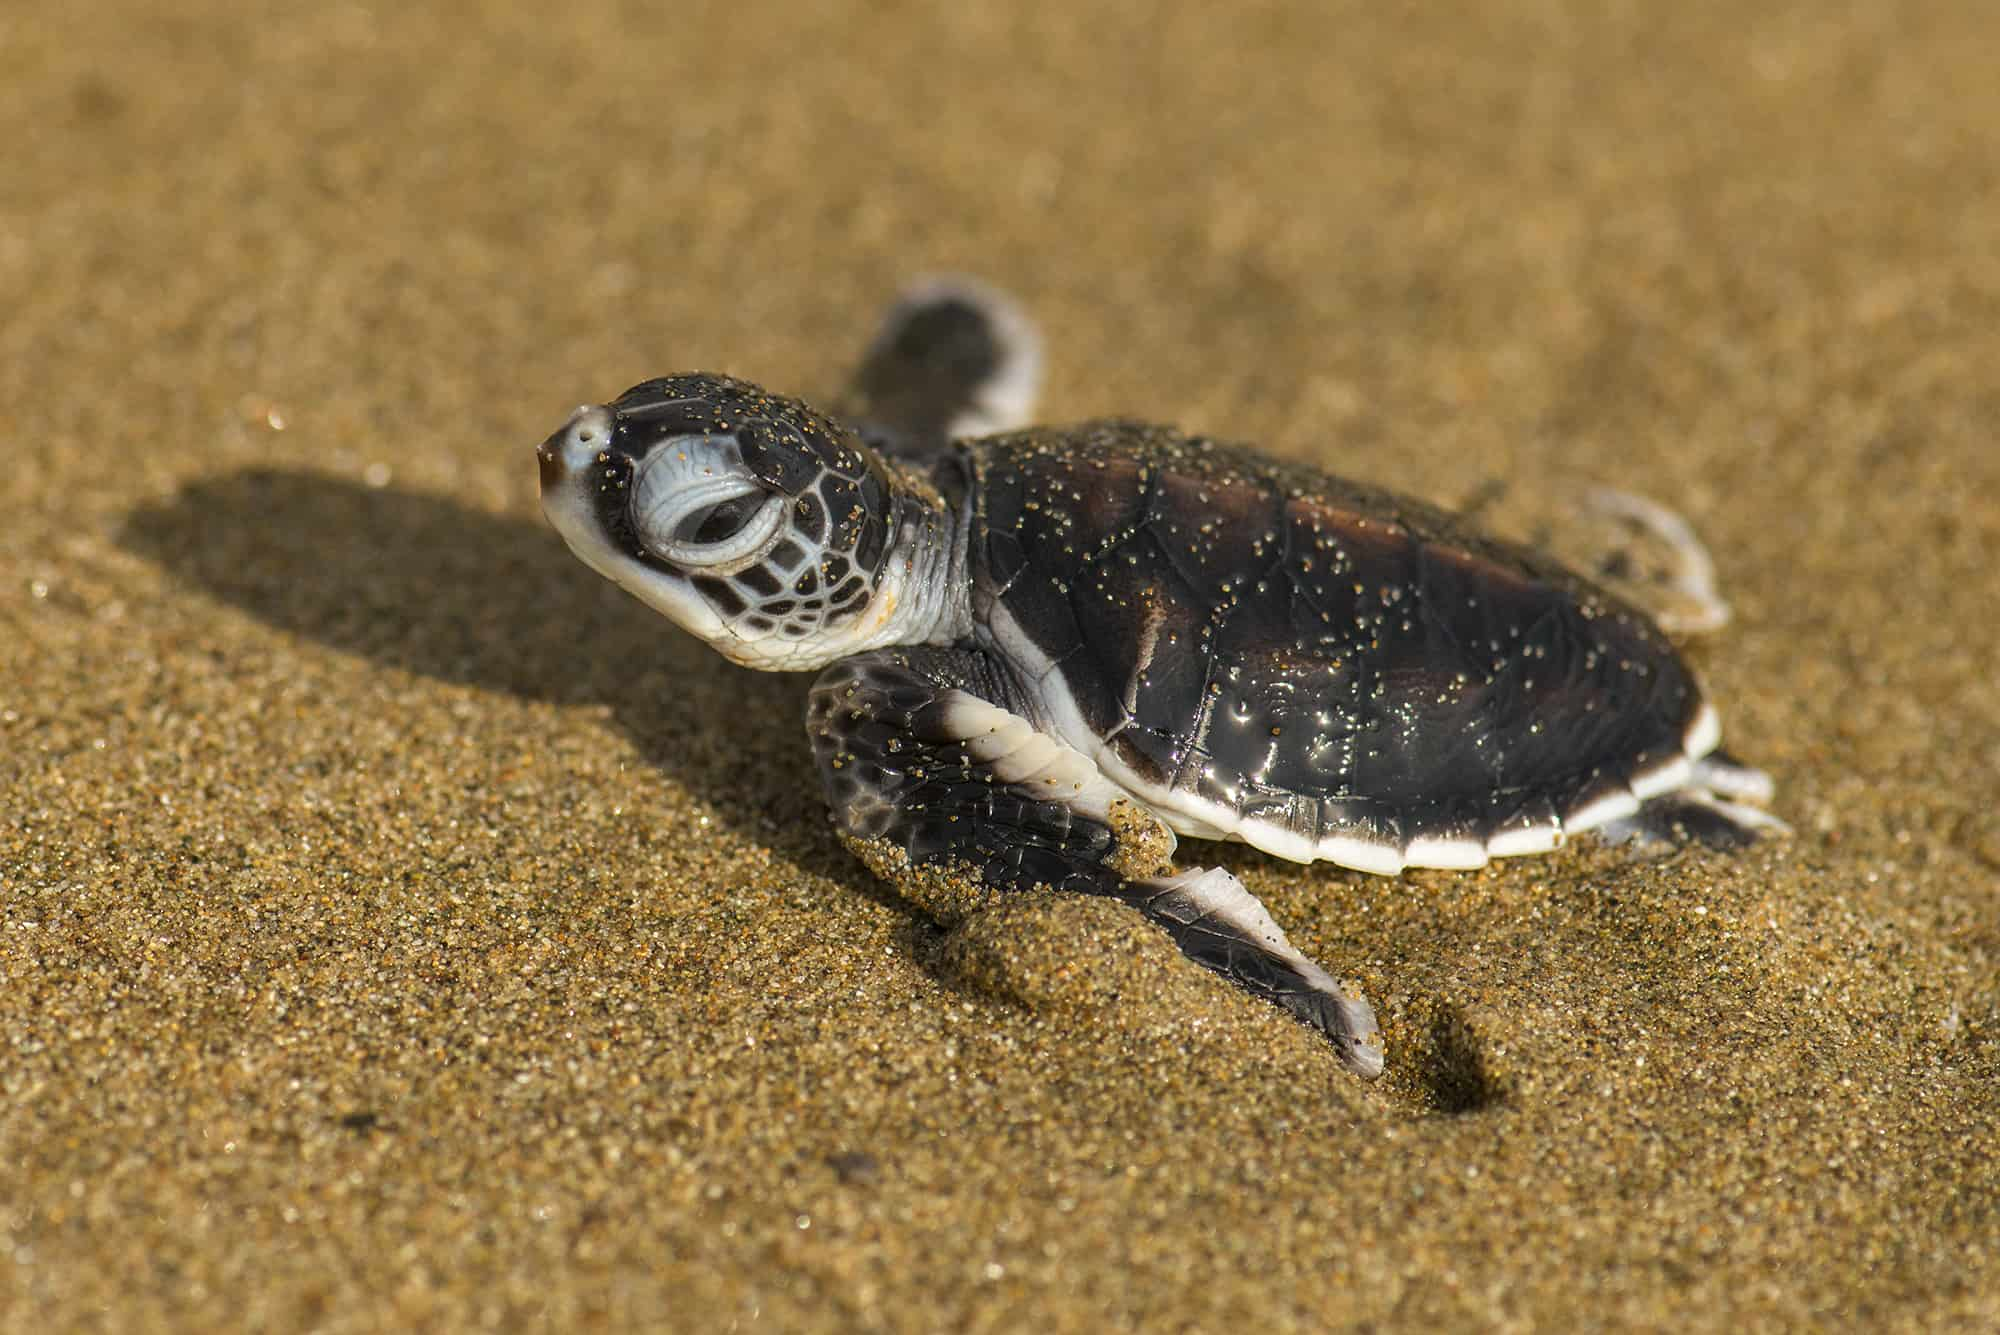 A baby turtle on the beaches of Oman